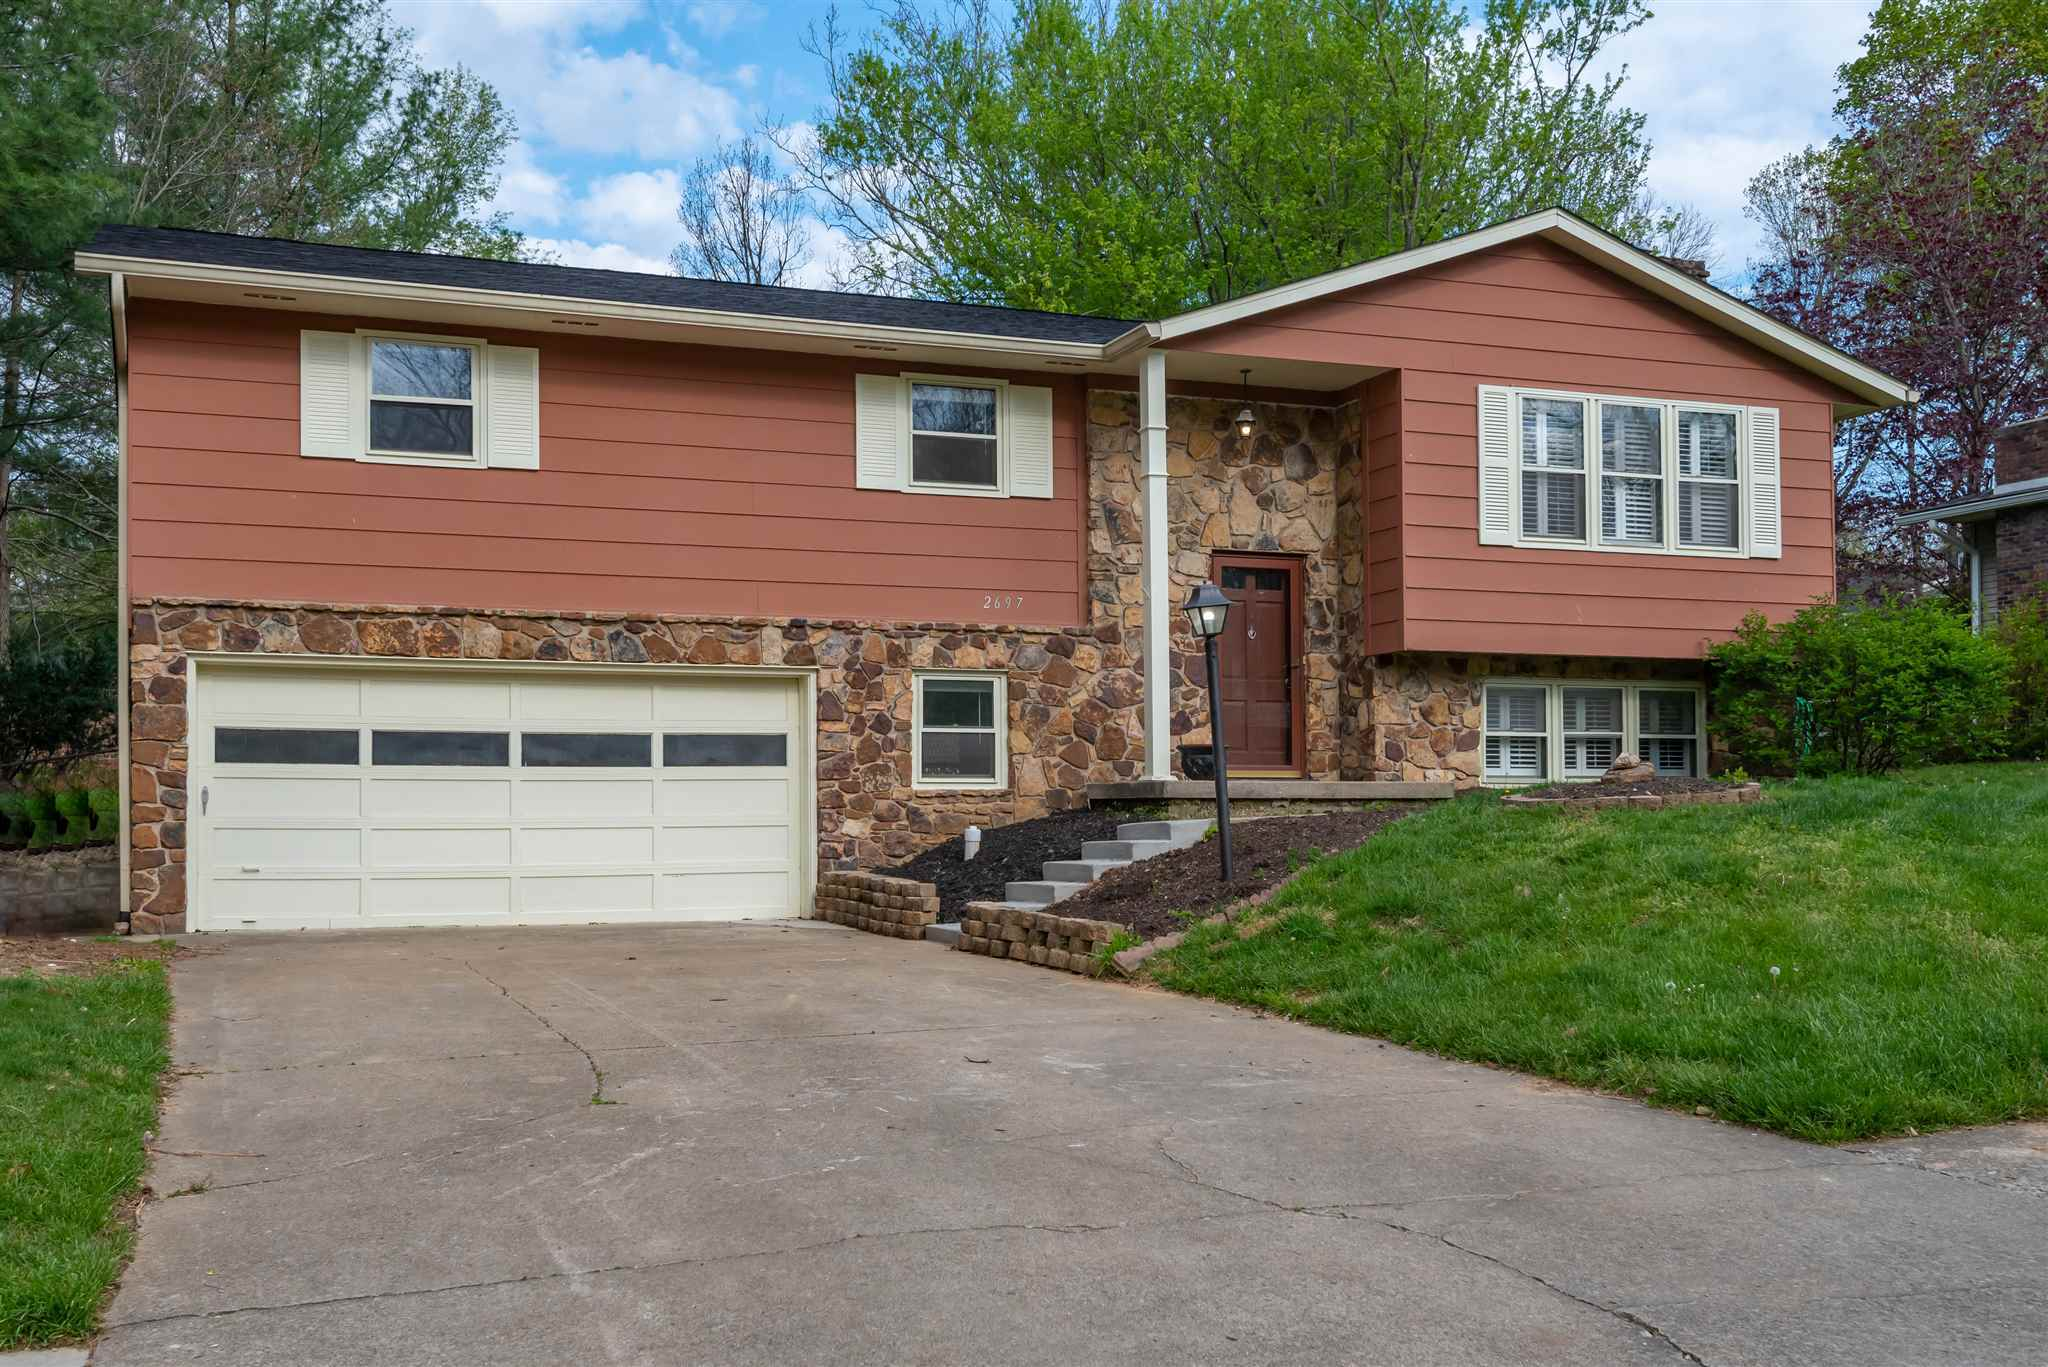 2697 E Rock Creek Drive Bloomington,IN 47401 202014724